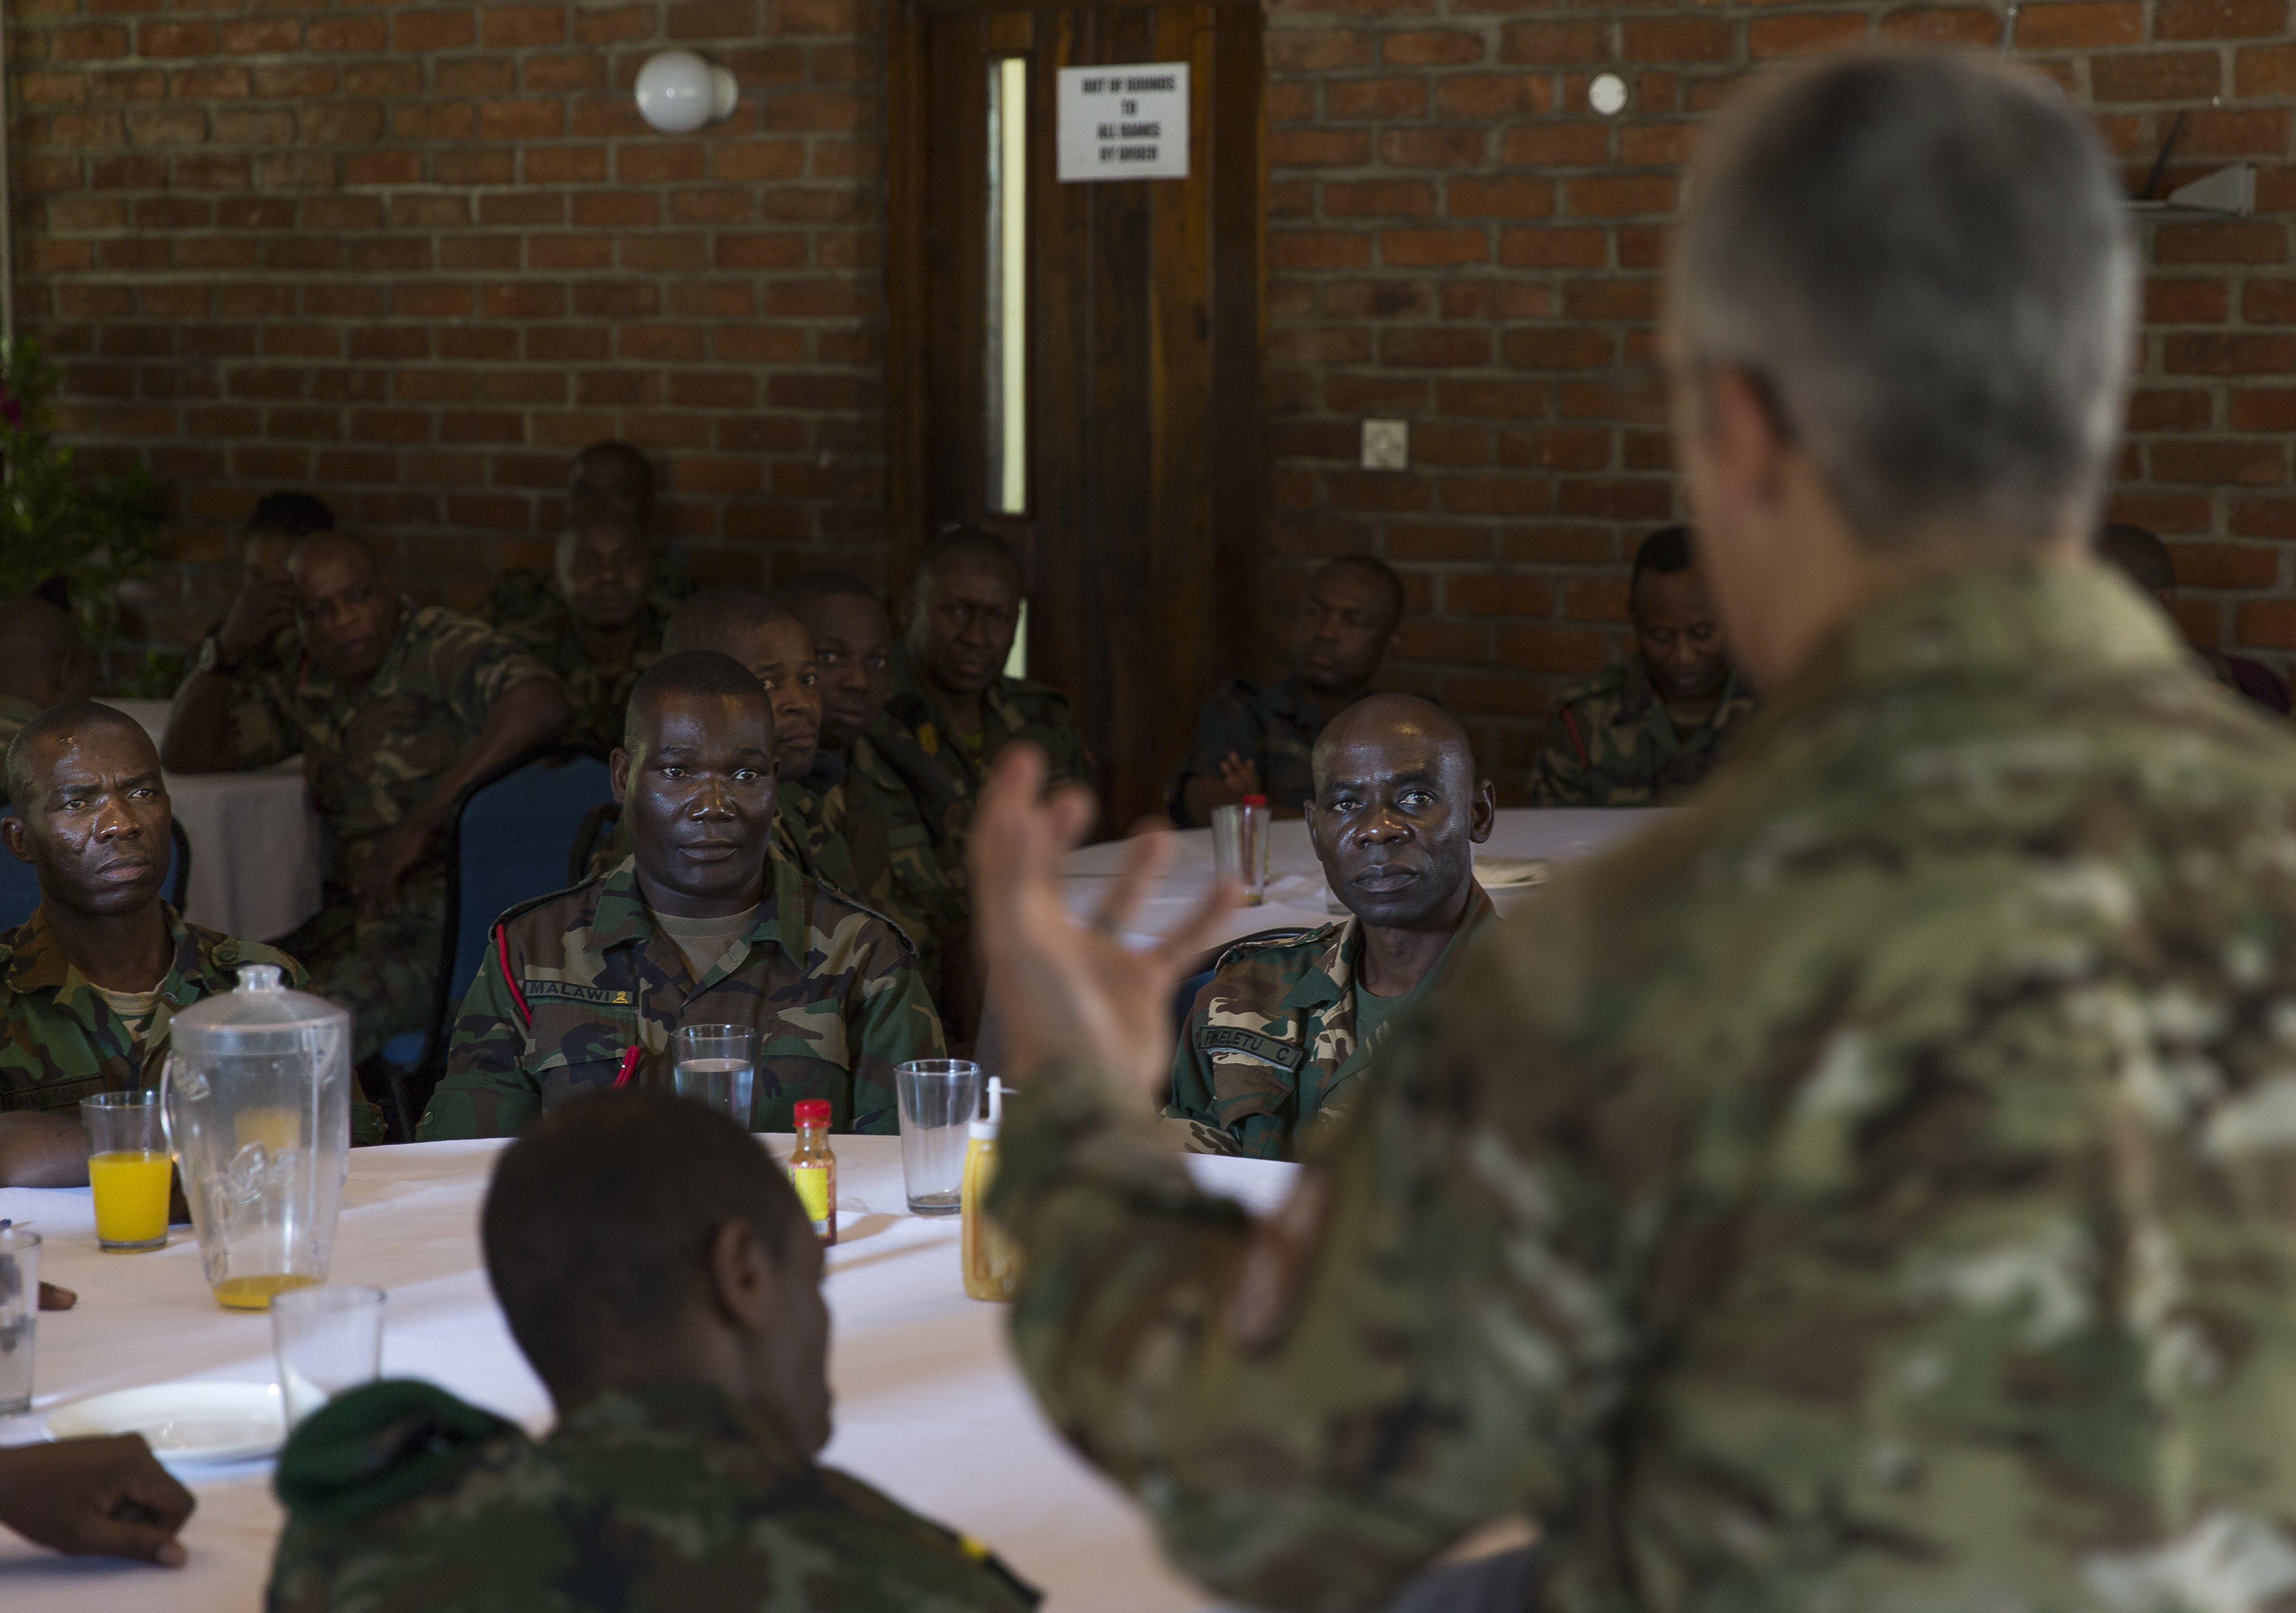 U.S. Africa Command Senior Enlisted Leader Command Chief Master Sgt. Ramon Colon-Lopez talks with students at the Malawi Armed Forces College Sergeant Major Academy in Malawi, Africa, June 1, 2018. Colon-Lopez answers questions and talks about ways to improve the Malawi Defence Force enlisted corps. Colon-Lopez travelled to Malawi to meet with the Malawi Defence Force, engaging with both senior officer and enlisted leadership as part of a three-day tour. The visit included a follow-up on issues addressed by the MDF during the Africa Senior Enlisted Leader Conference in November 2017, as well as assess the MDF's capability to train and sustain Peace Keeping Operations Forces.